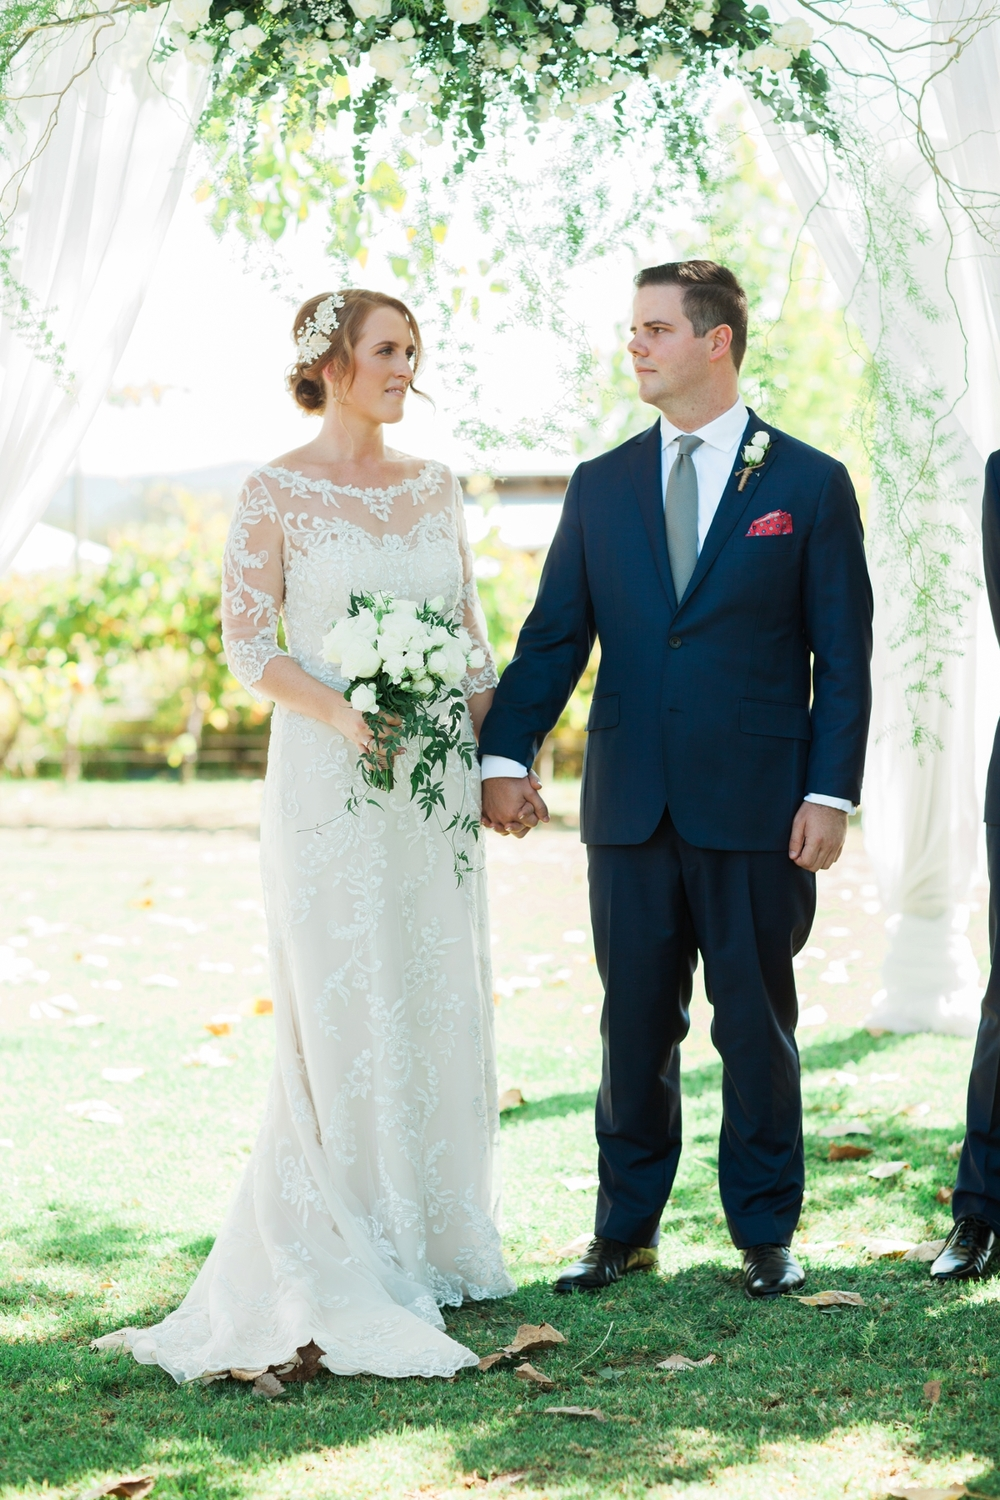 The Vine Grove Mudgee Wedding, Photography by Mr Edwards_1758.jpg